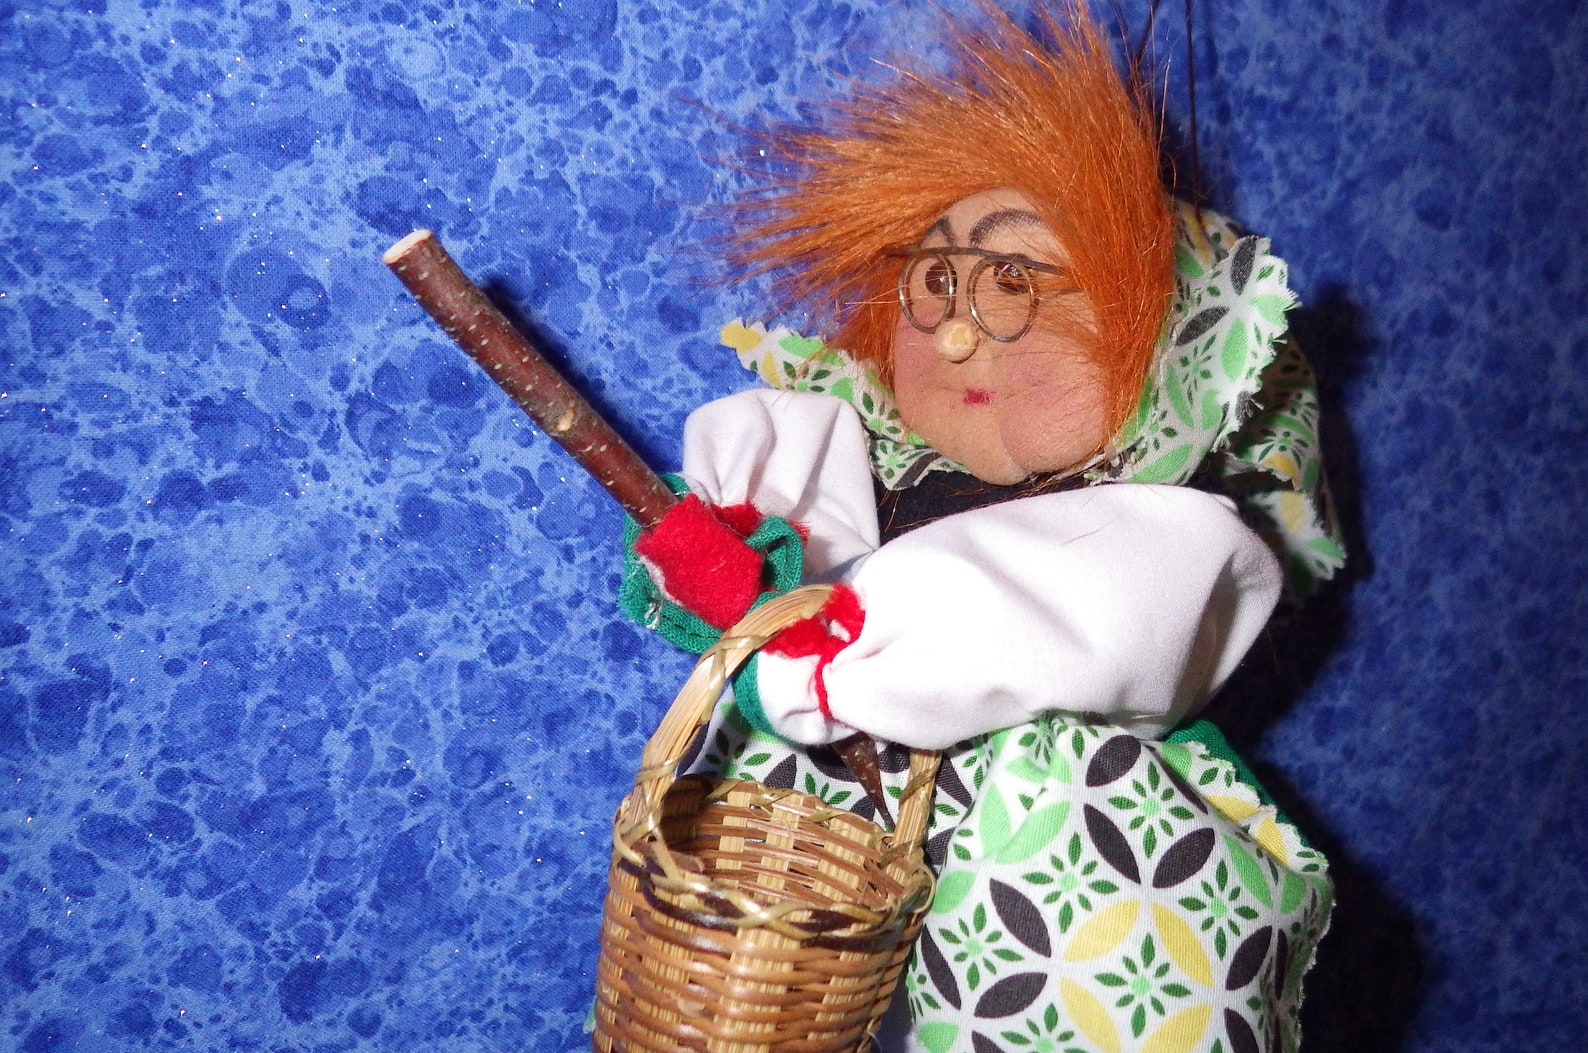 Vintage German HARZ MOUNTAIN WITCH--Fiery Red Hair Carrying Basket Green Dirndl--Wearing Scarf/Apron in Green/Yellow Print --Good Luck Witch